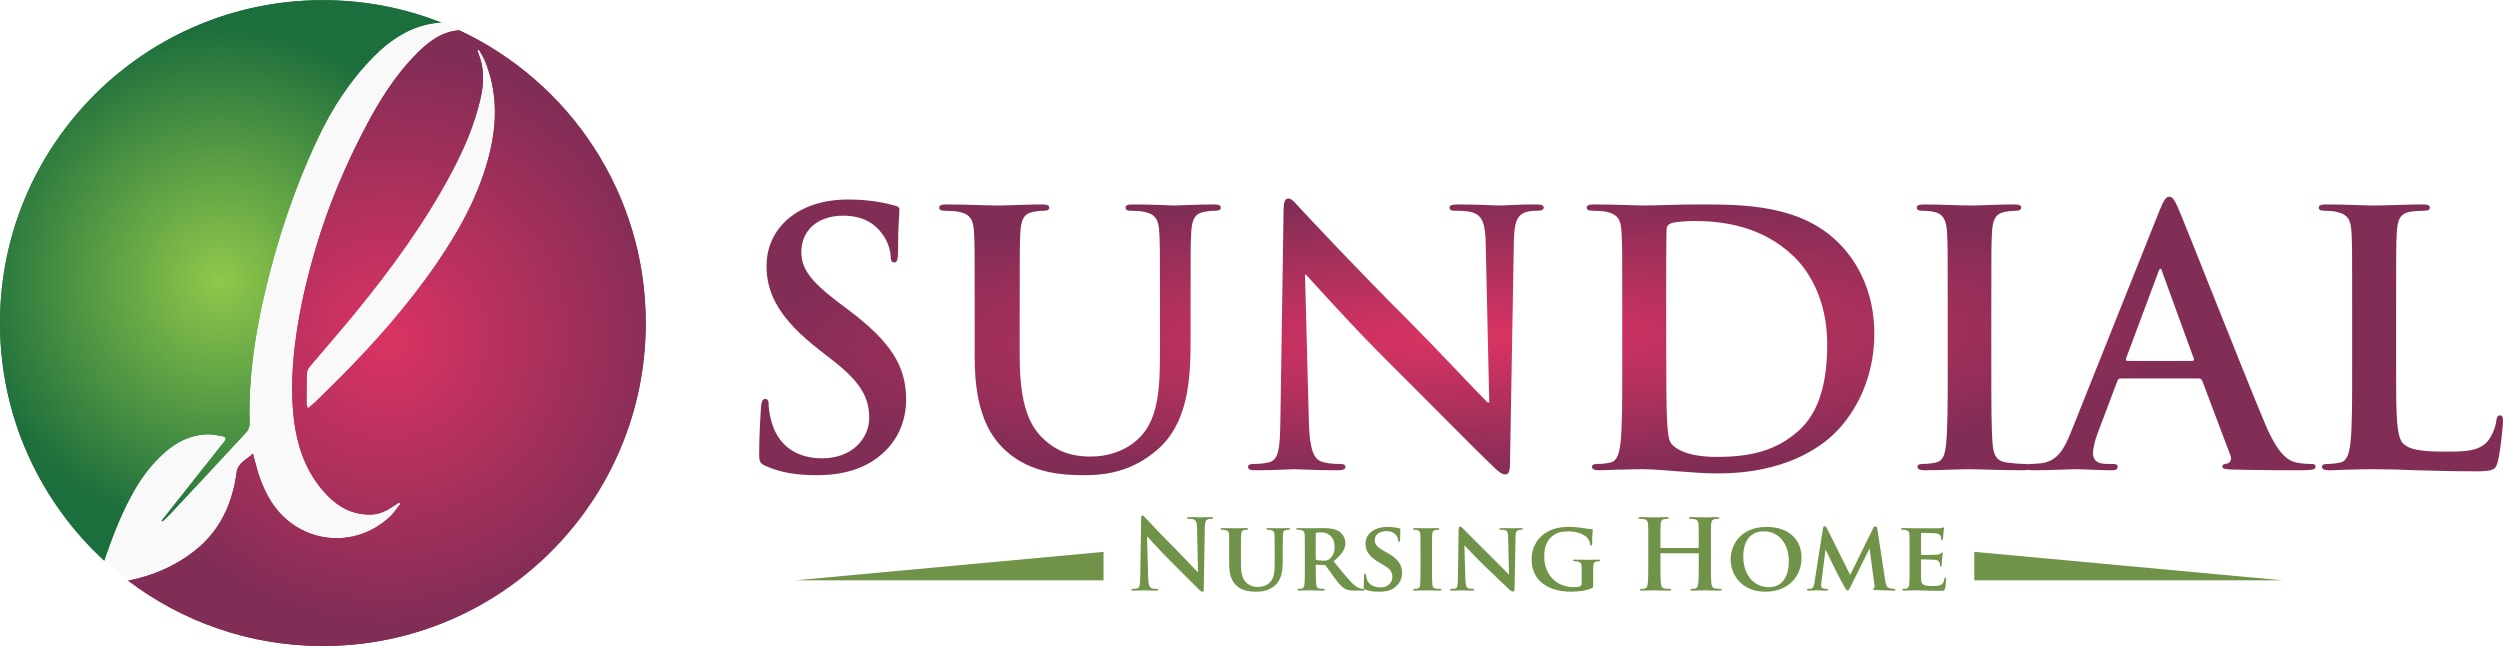 Logo of Sundial Nursing Home Nursing Homes In Sidmouth, Devon